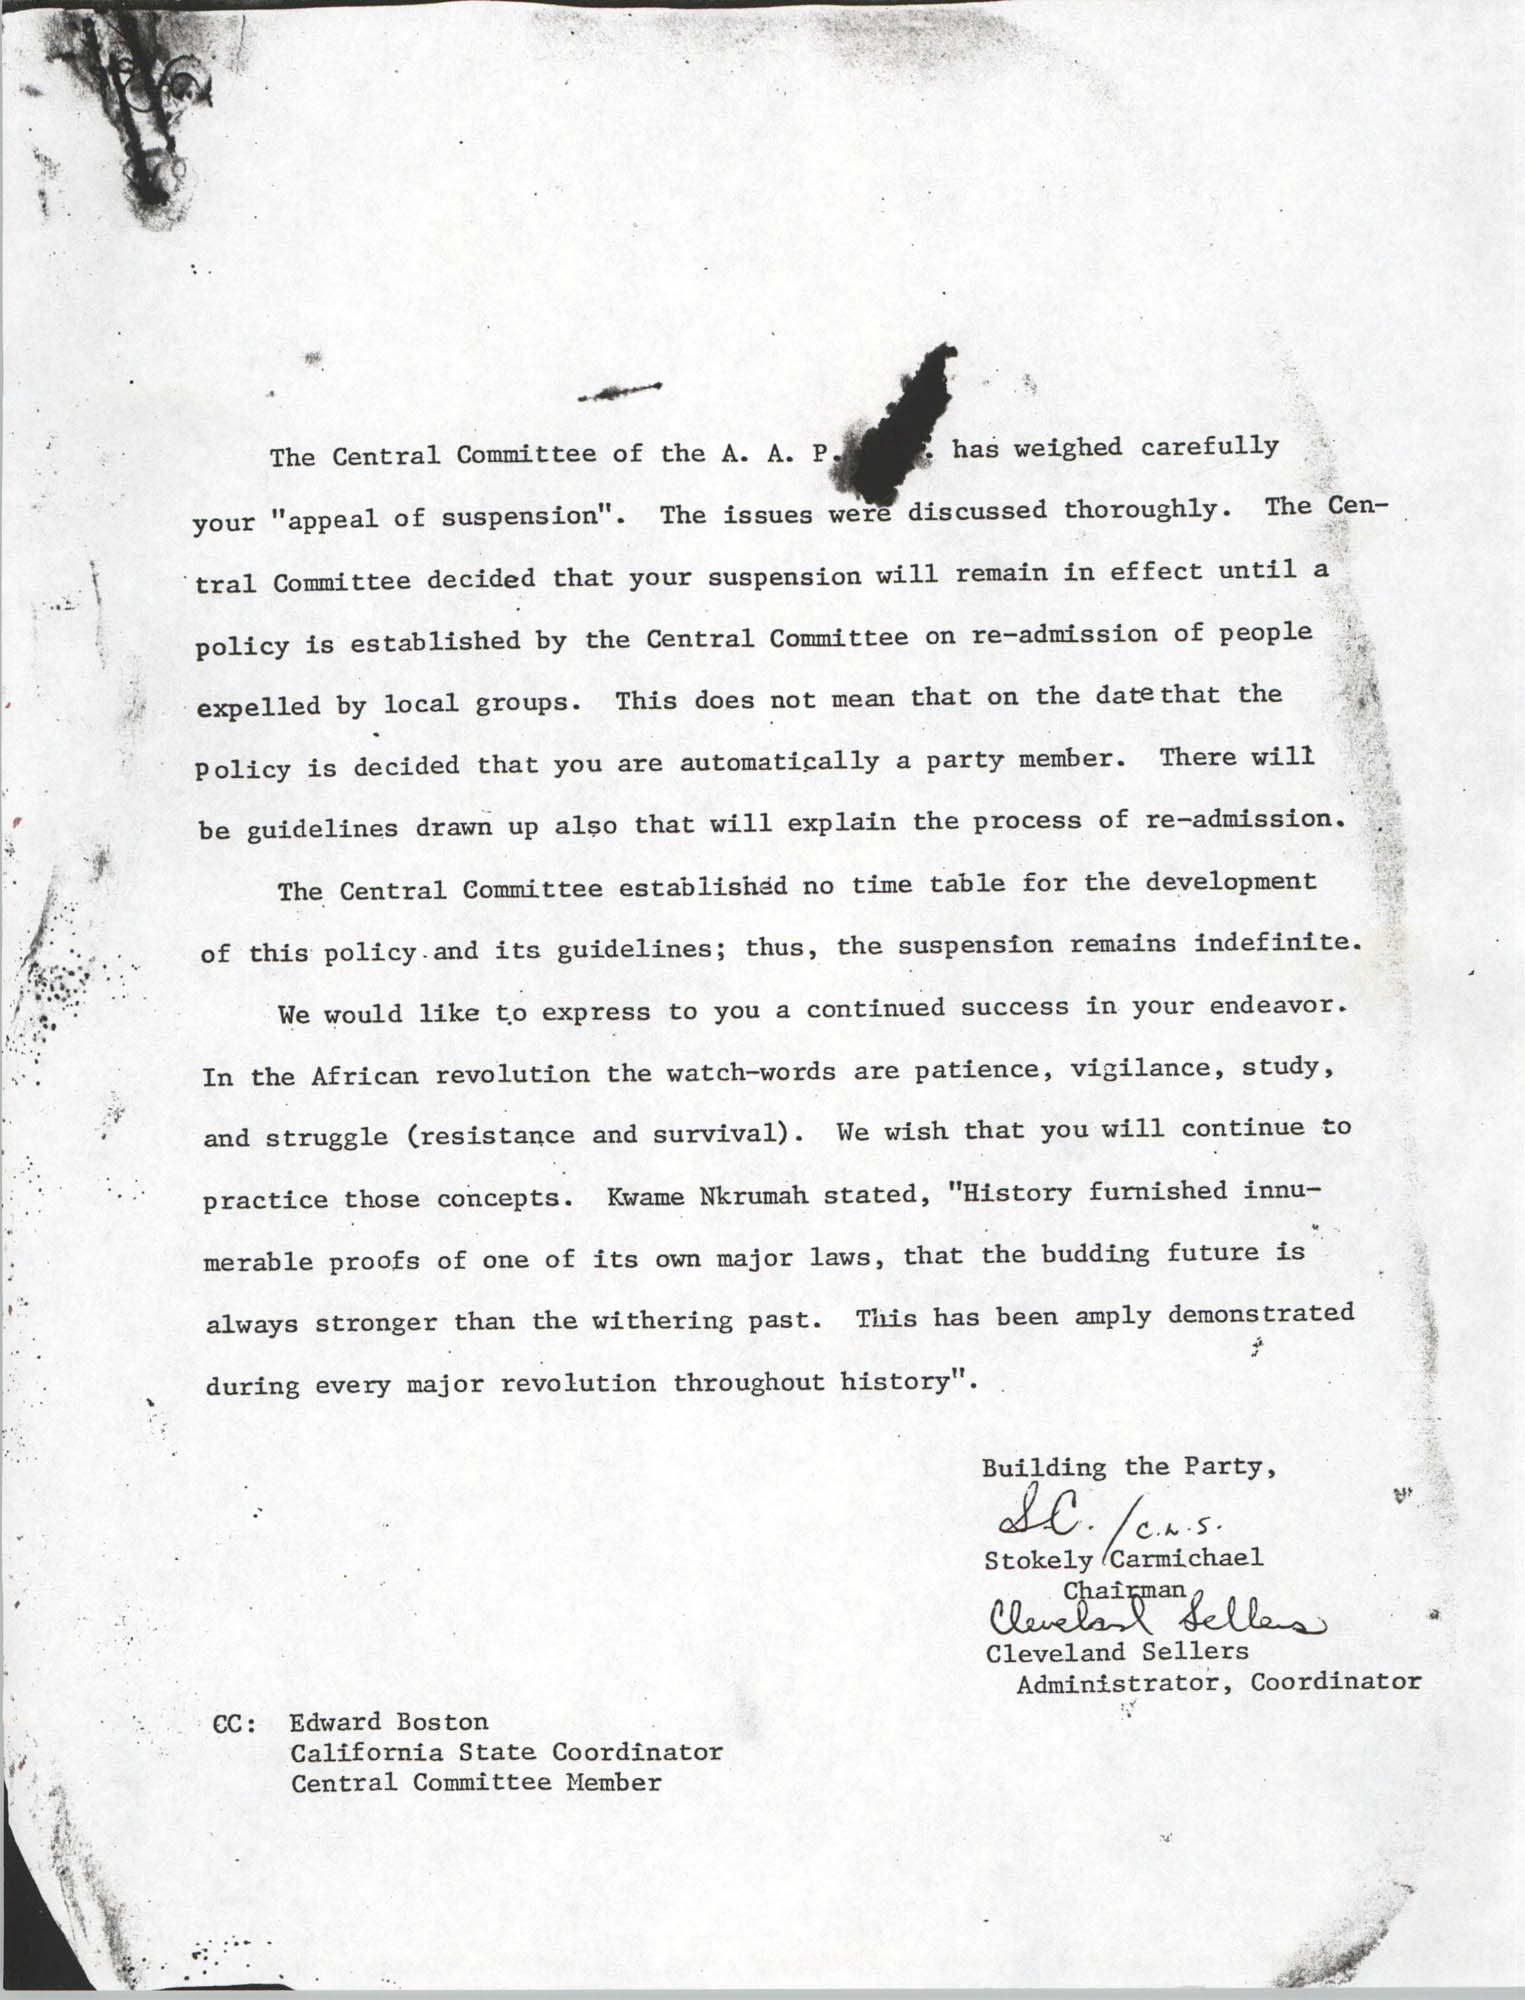 Letter from Stokely Carmichael and Cleveland Sellers